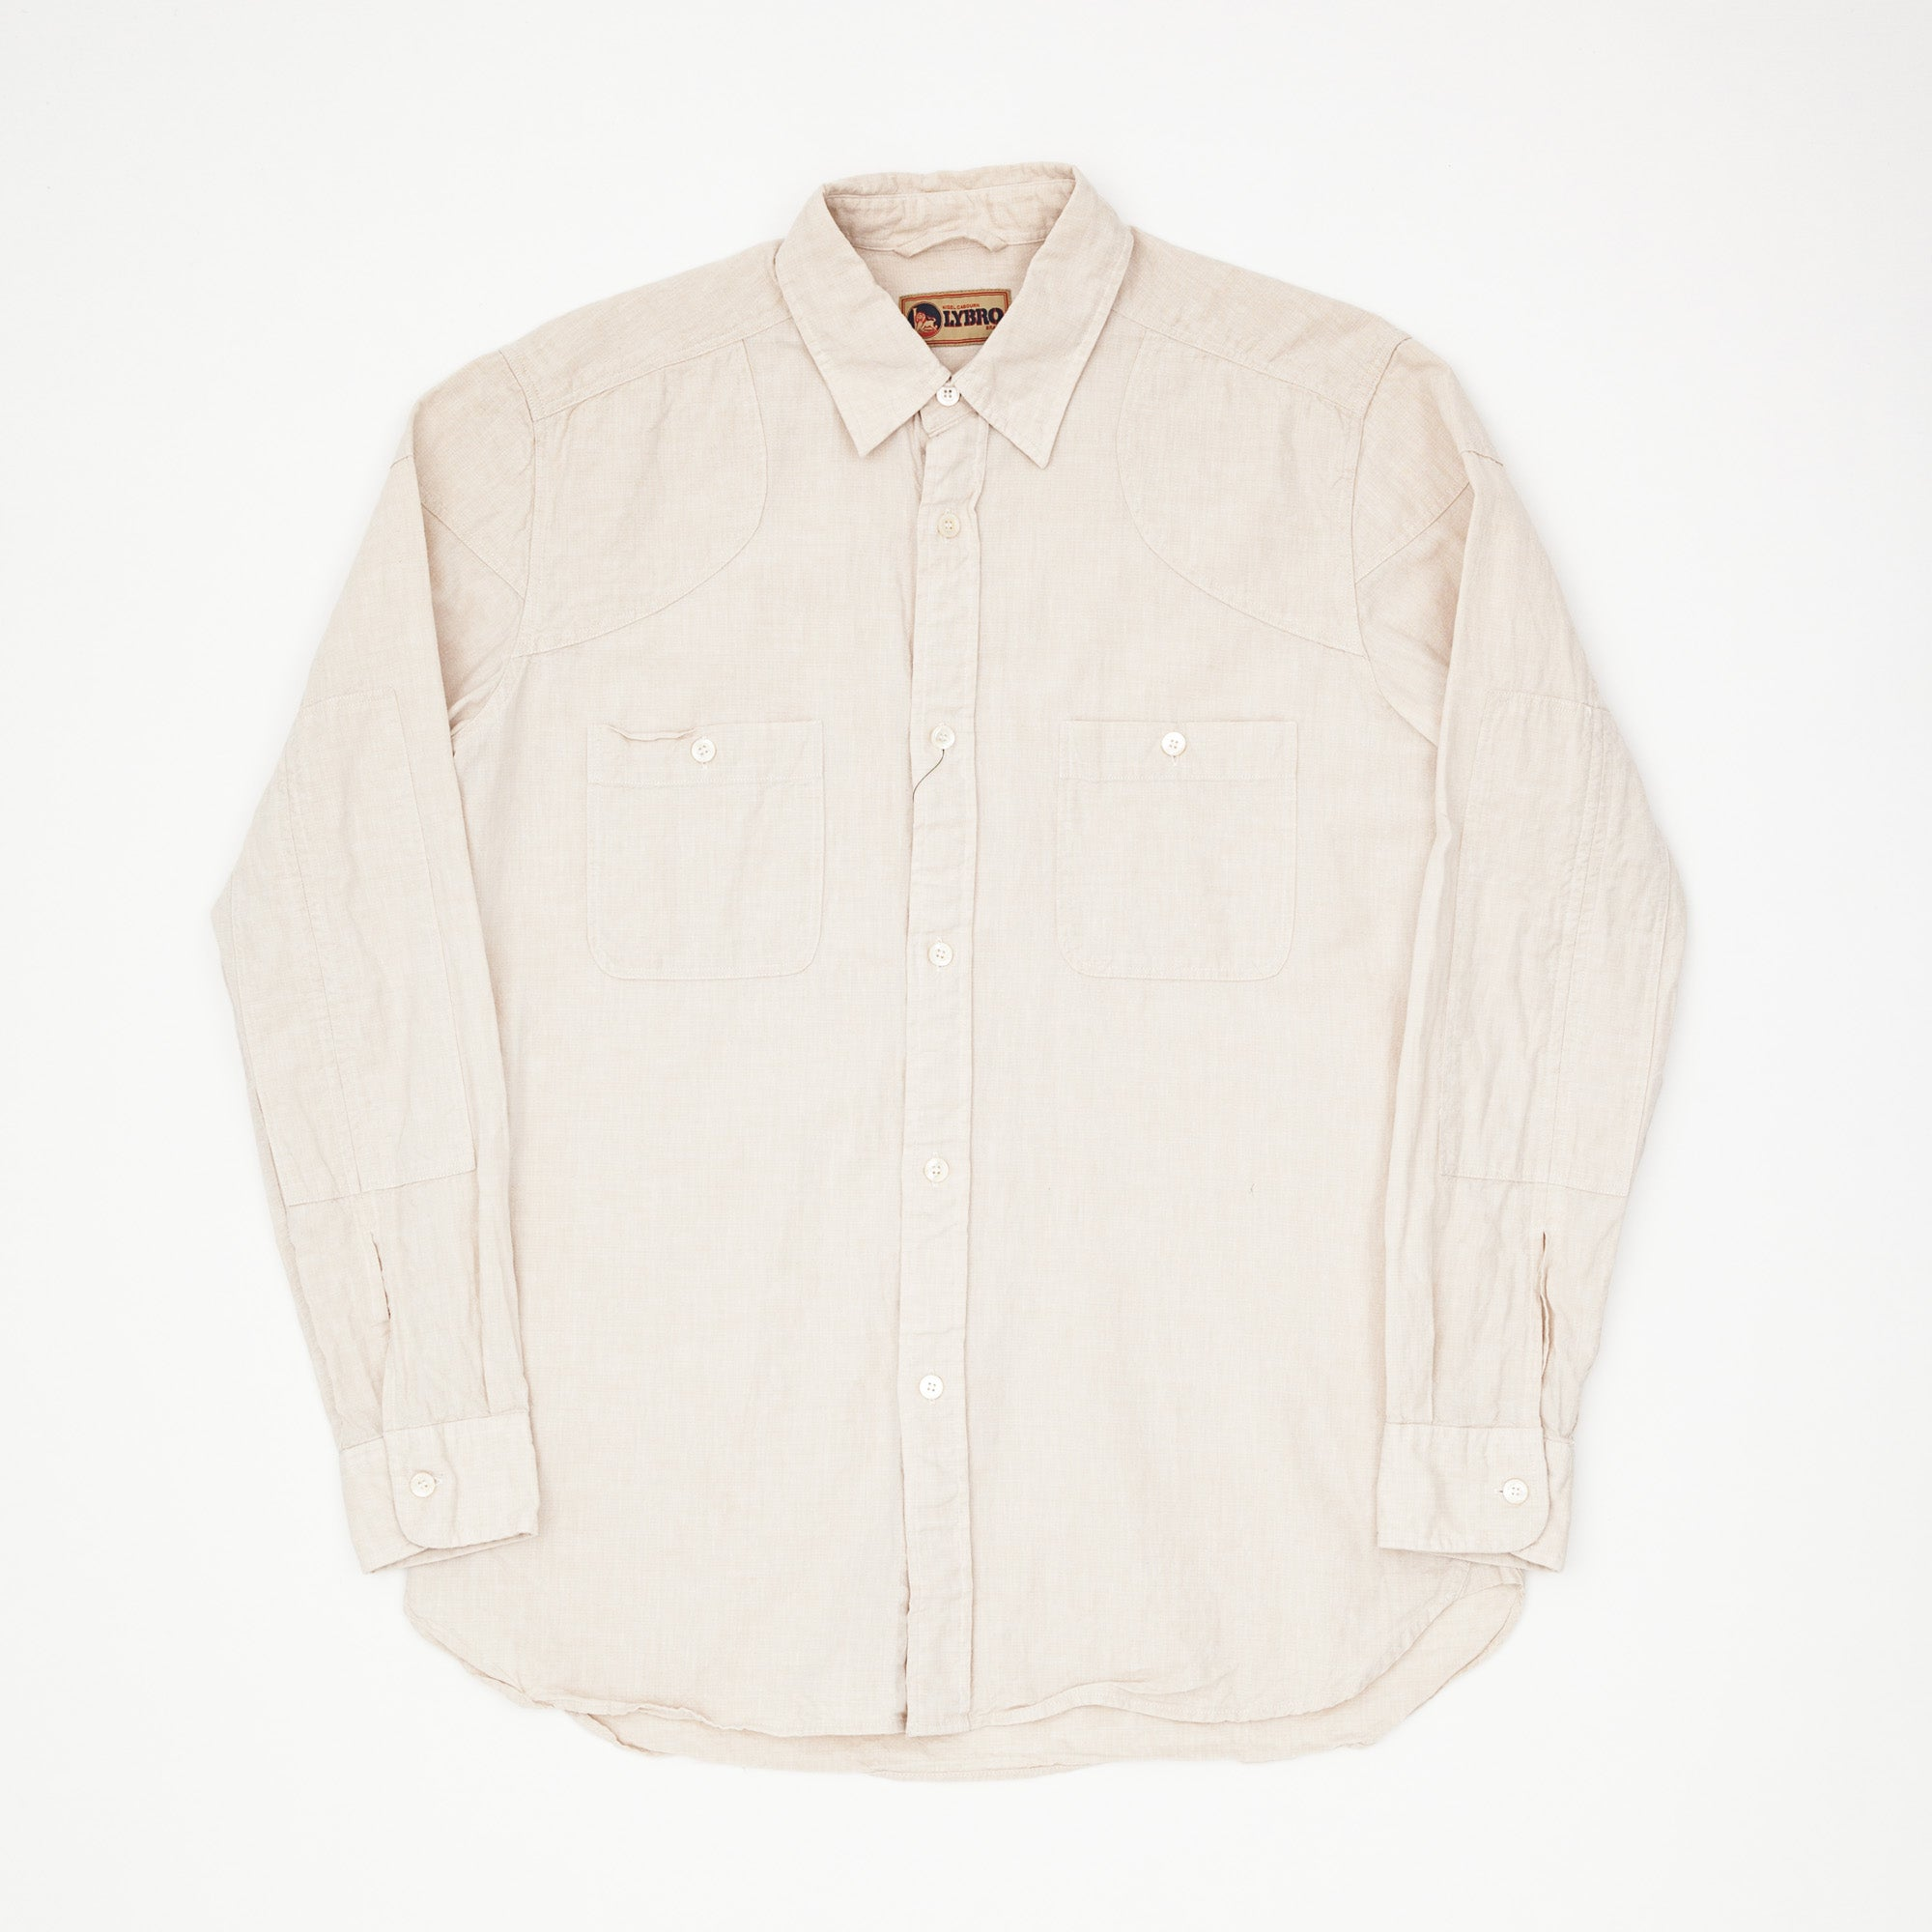 Lybro Cotton Shirt